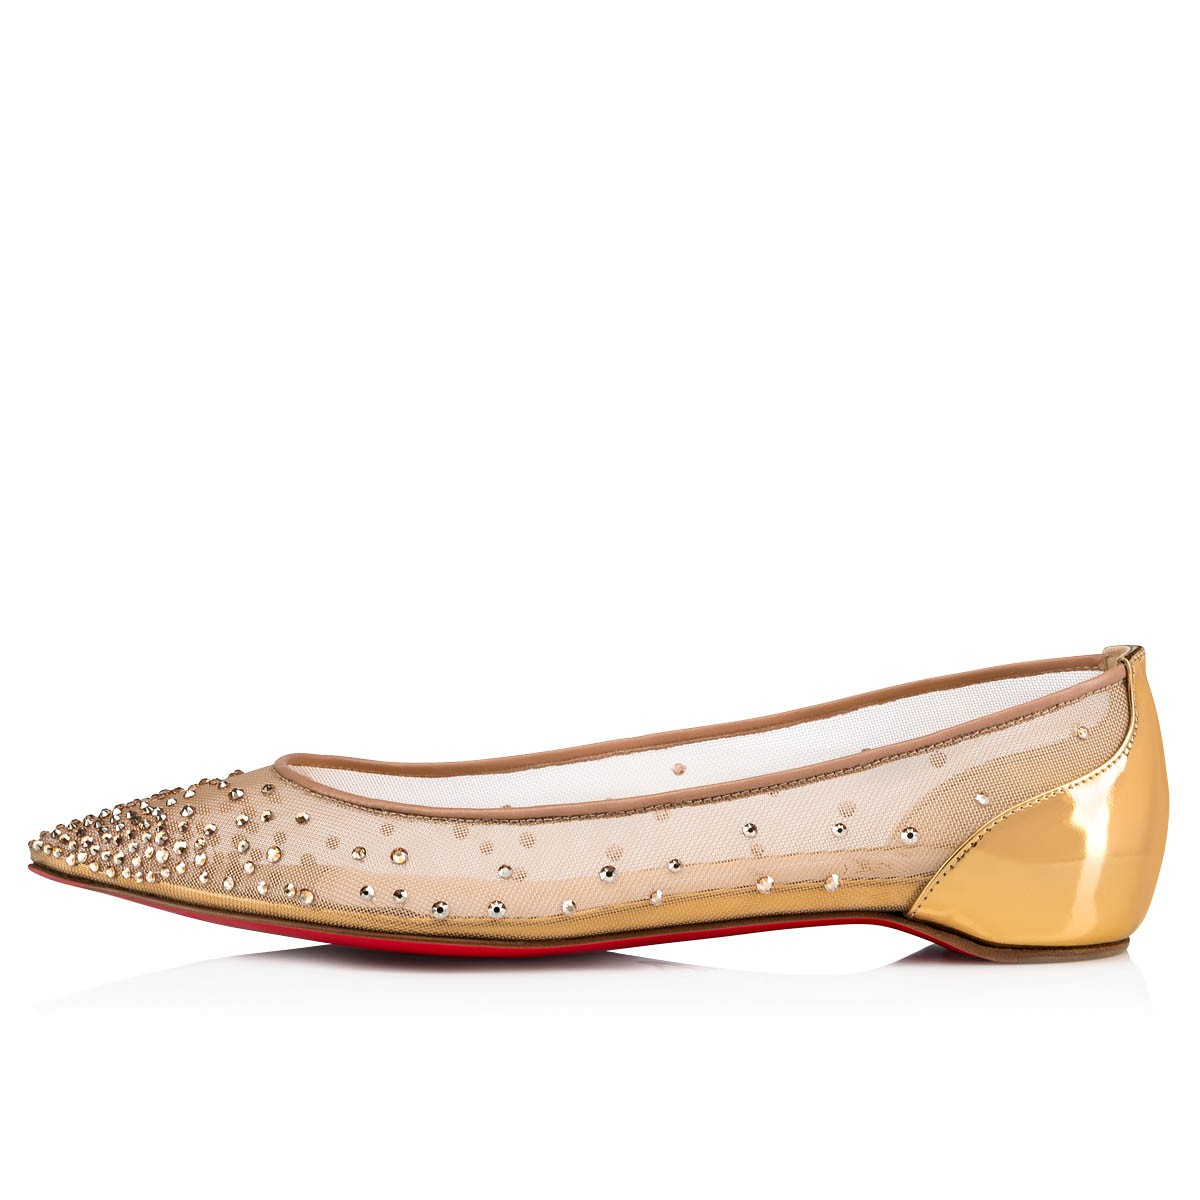 ウィメンズシューズ - Follies Strass Flat - Christian Louboutin